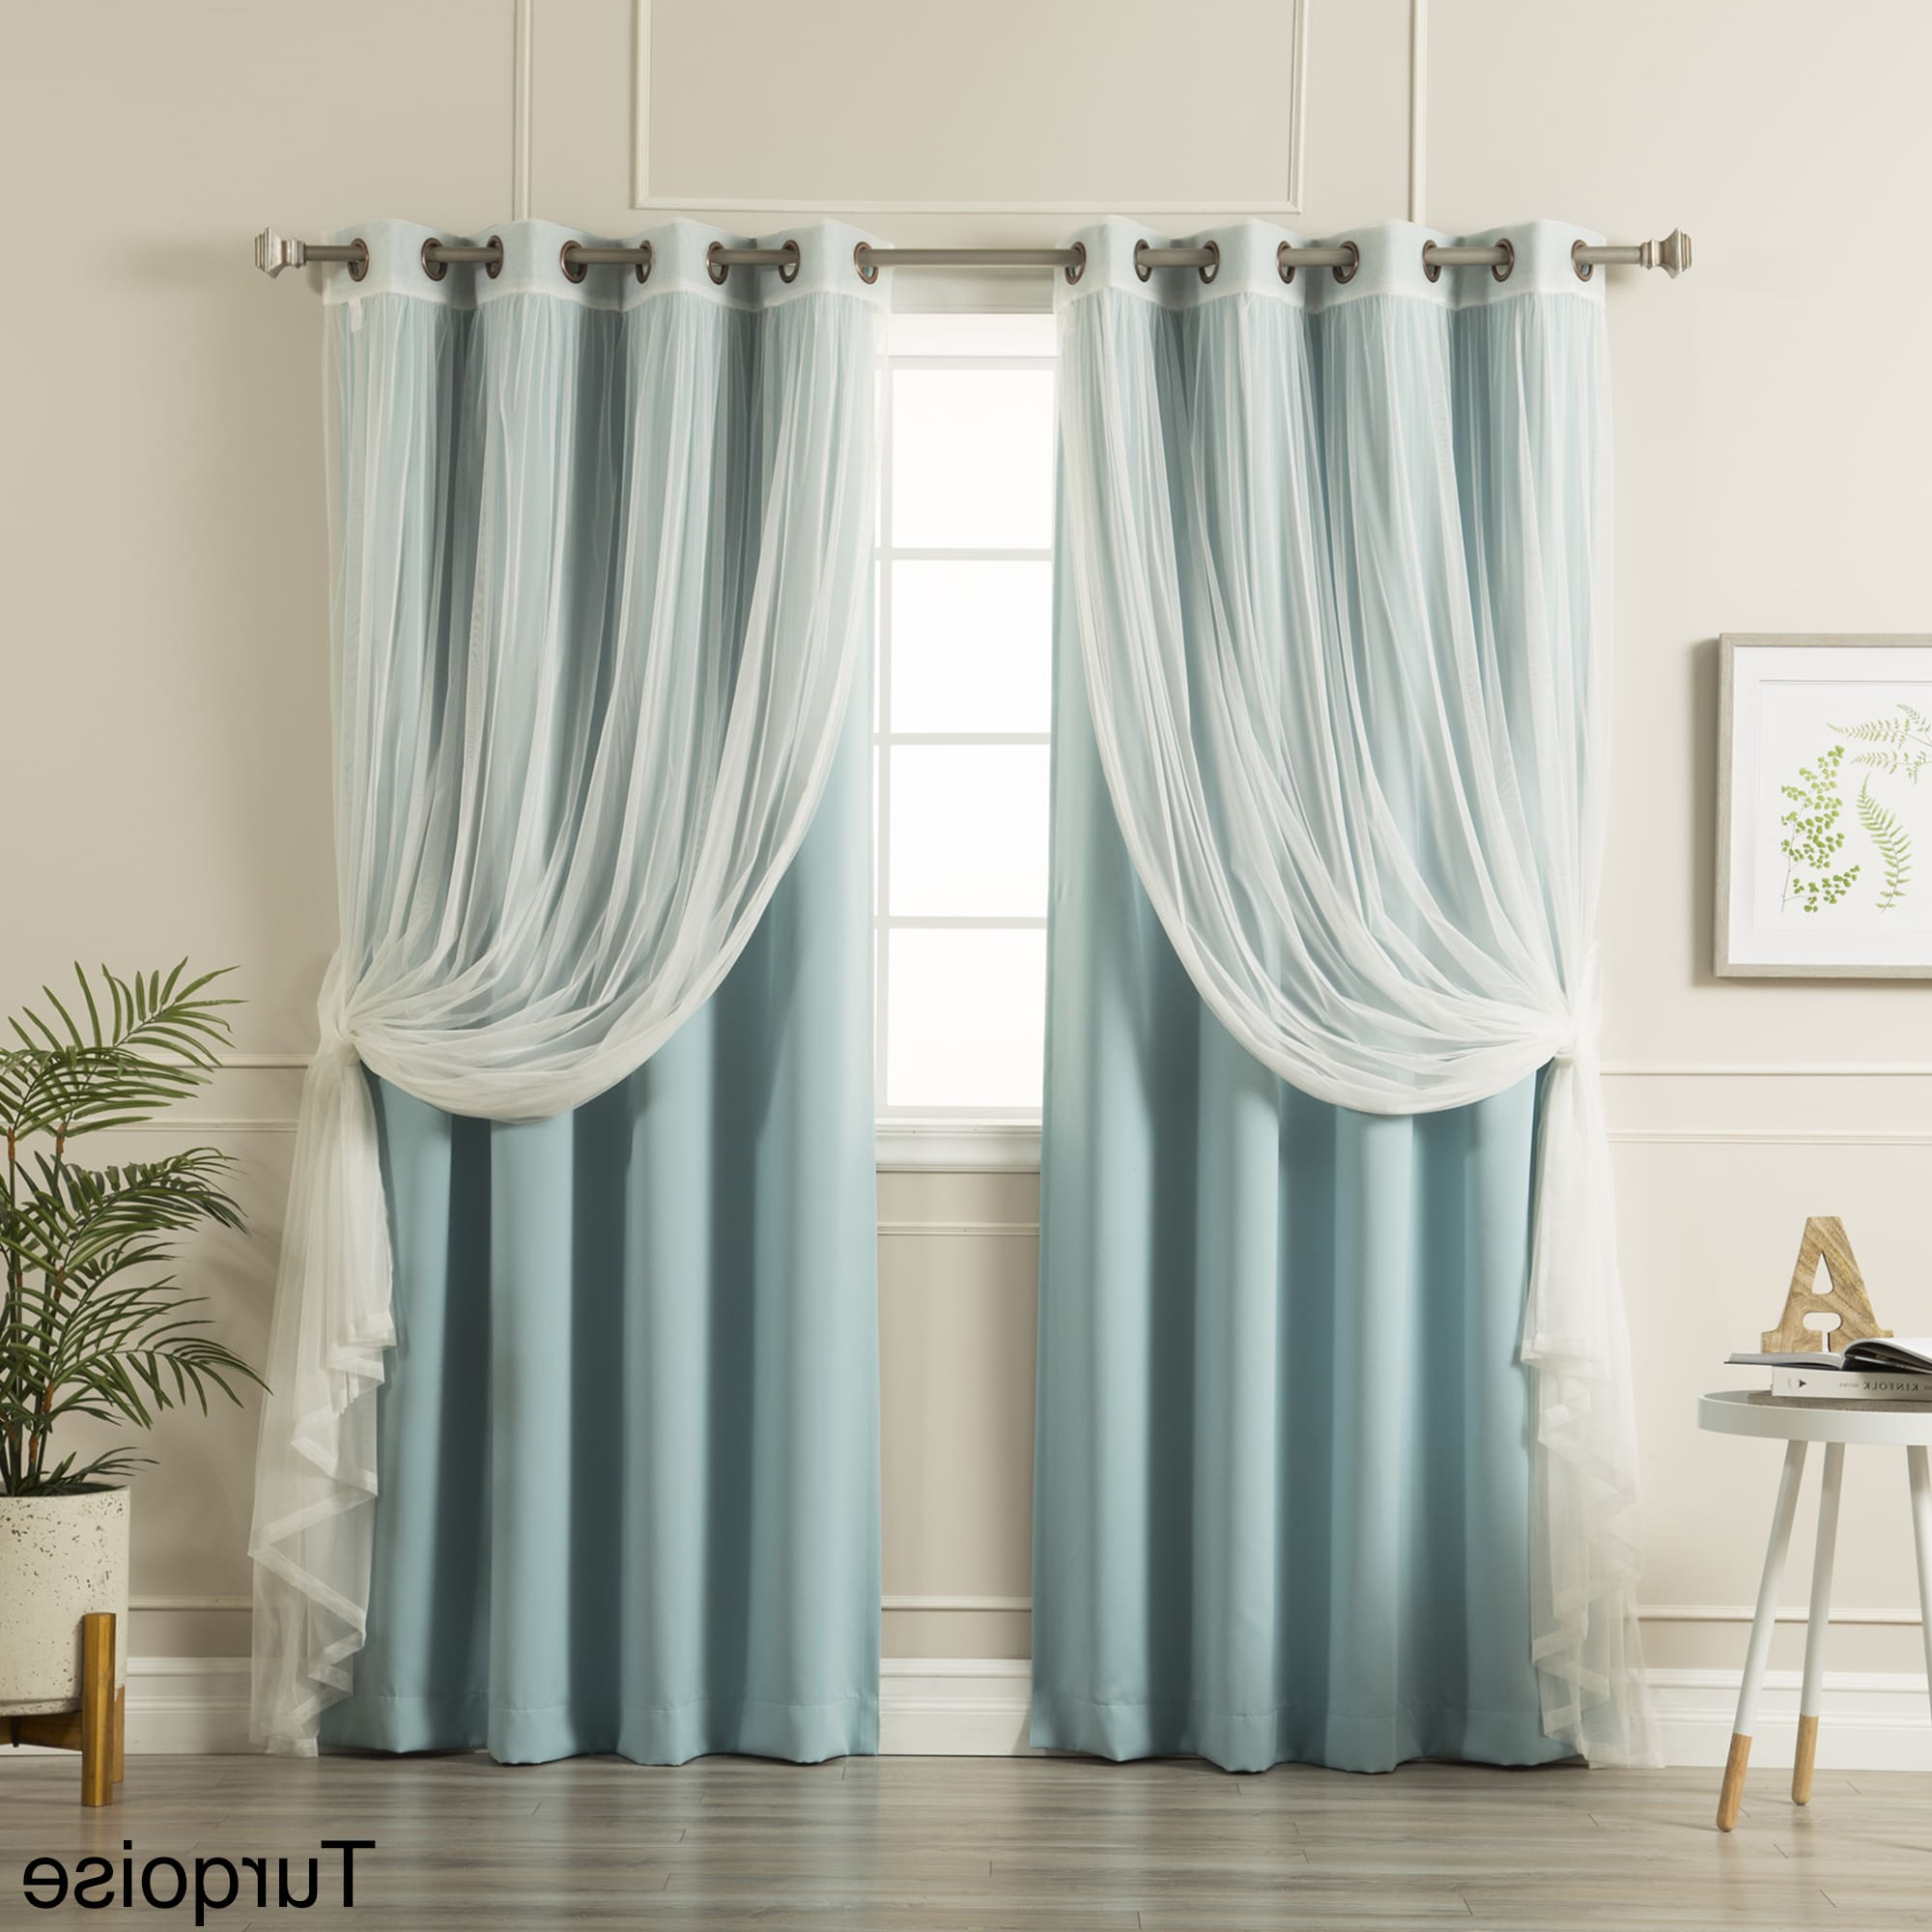 Widely Used Tulle Sheer With Attached Valance And Blackout 4 Piece Curtain Panel Pairs Intended For Aurora Home Mix & Match Blackout Tulle Lace Sheer 4 Piece (View 10 of 20)